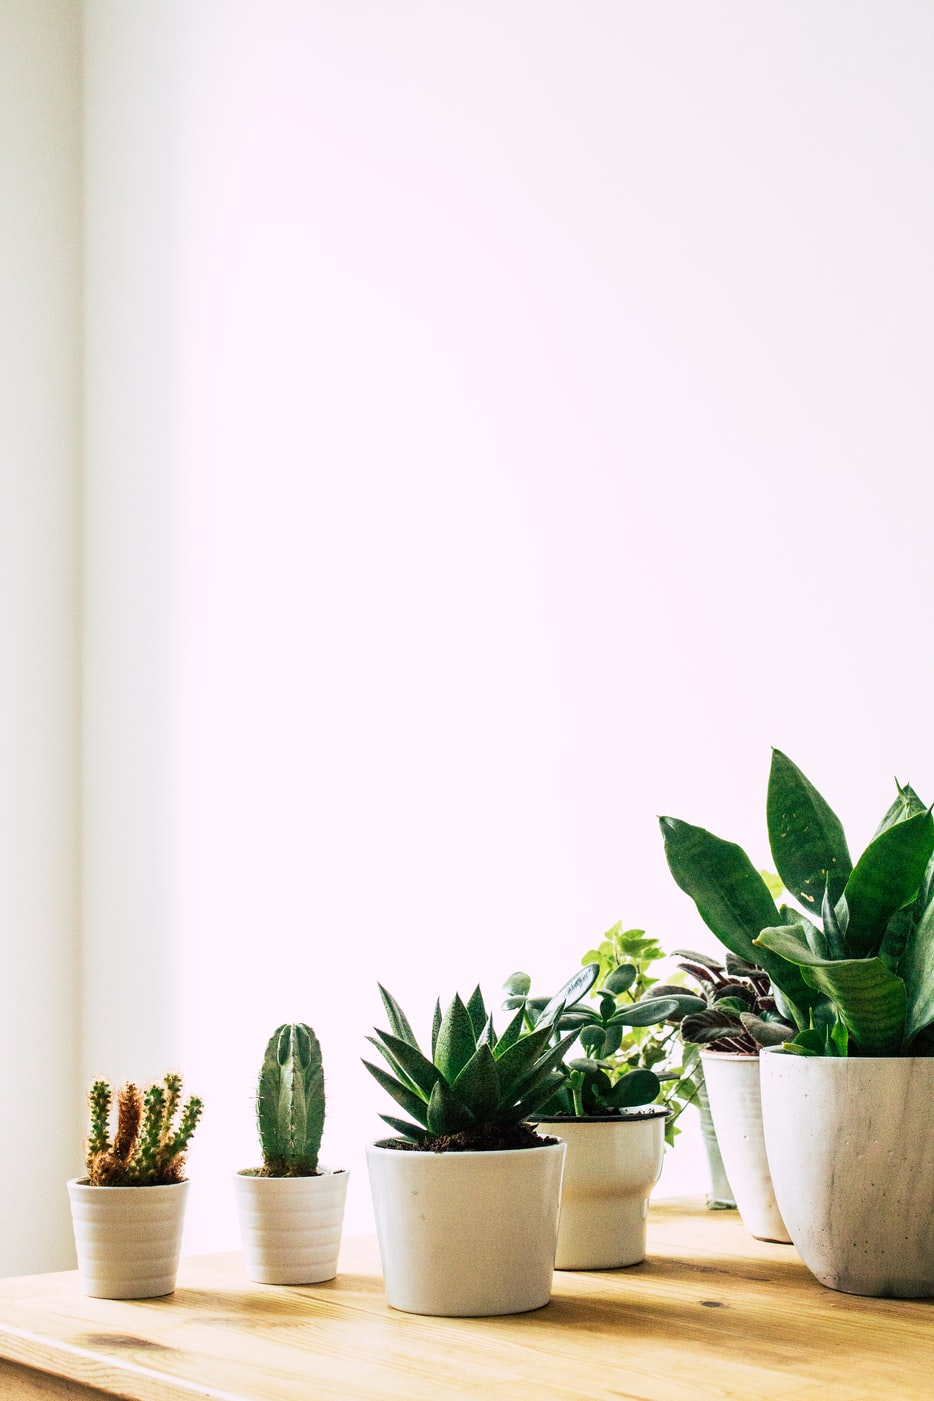 stock photo of a group of Succulent plants